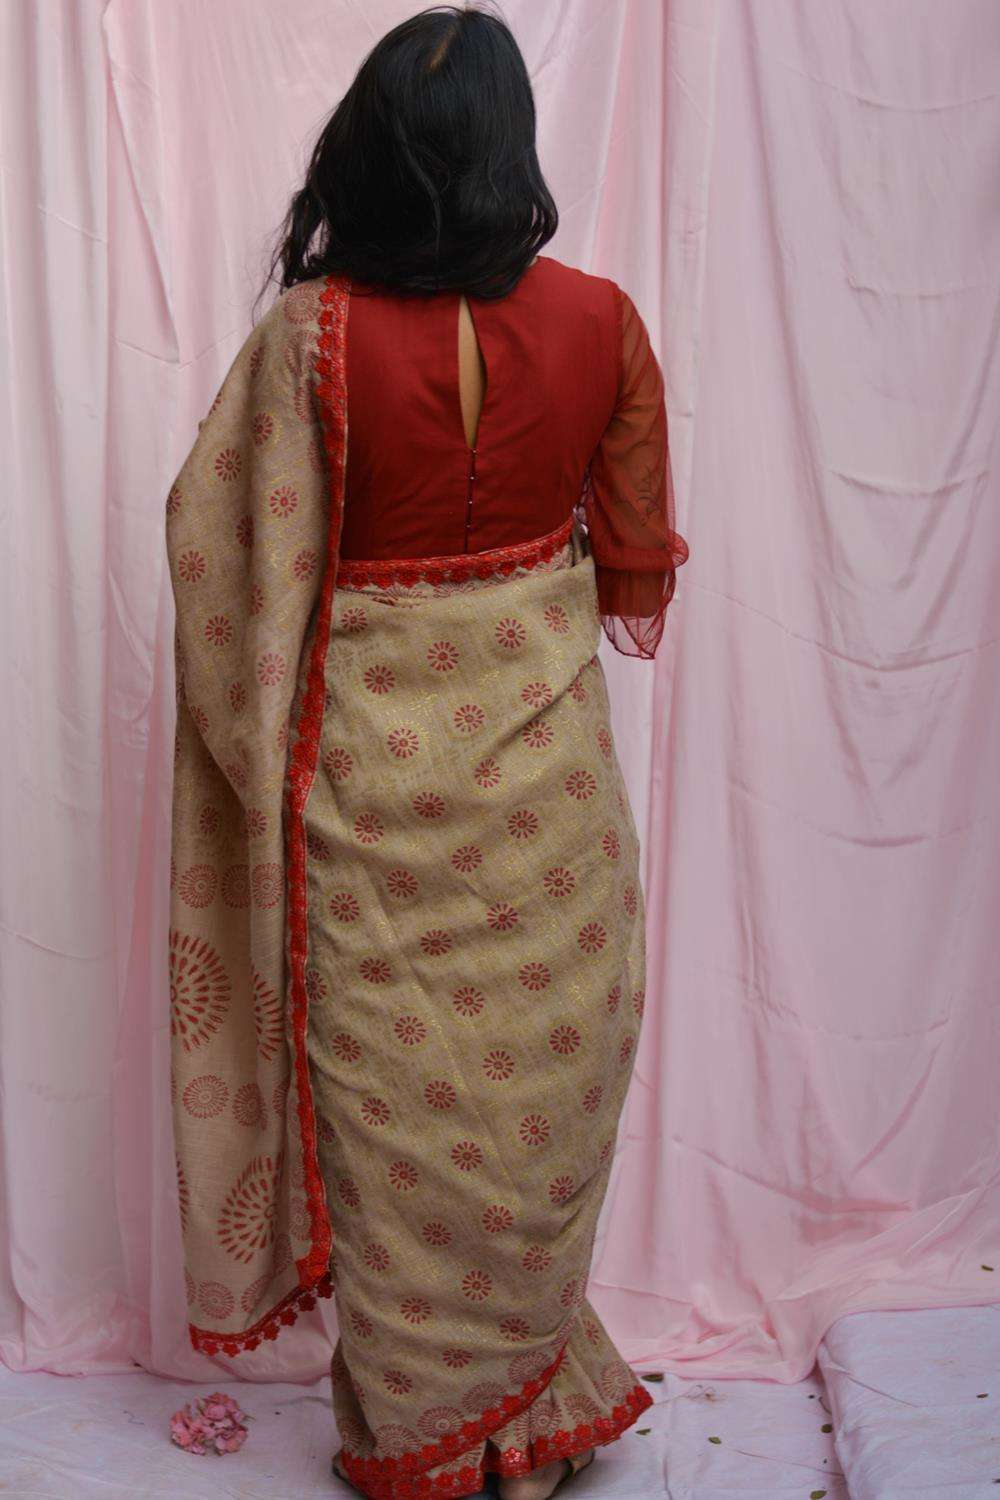 Beige soft linen saree with maroon and gold block print and red lace edging